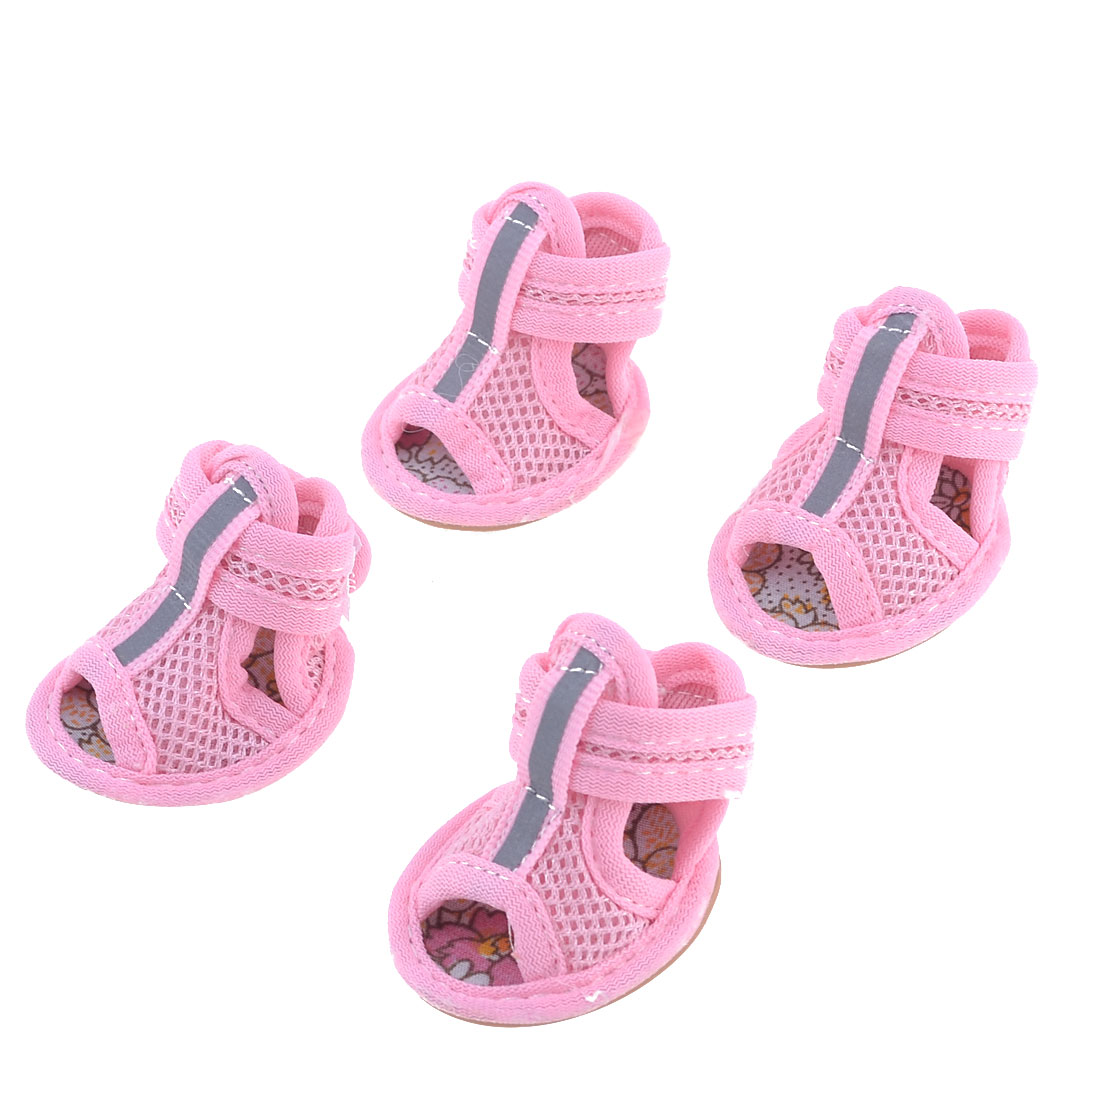 2 Pairs Pet Doggie Pomeranian Pink Mesh Vamp Sandals Shoes Size S